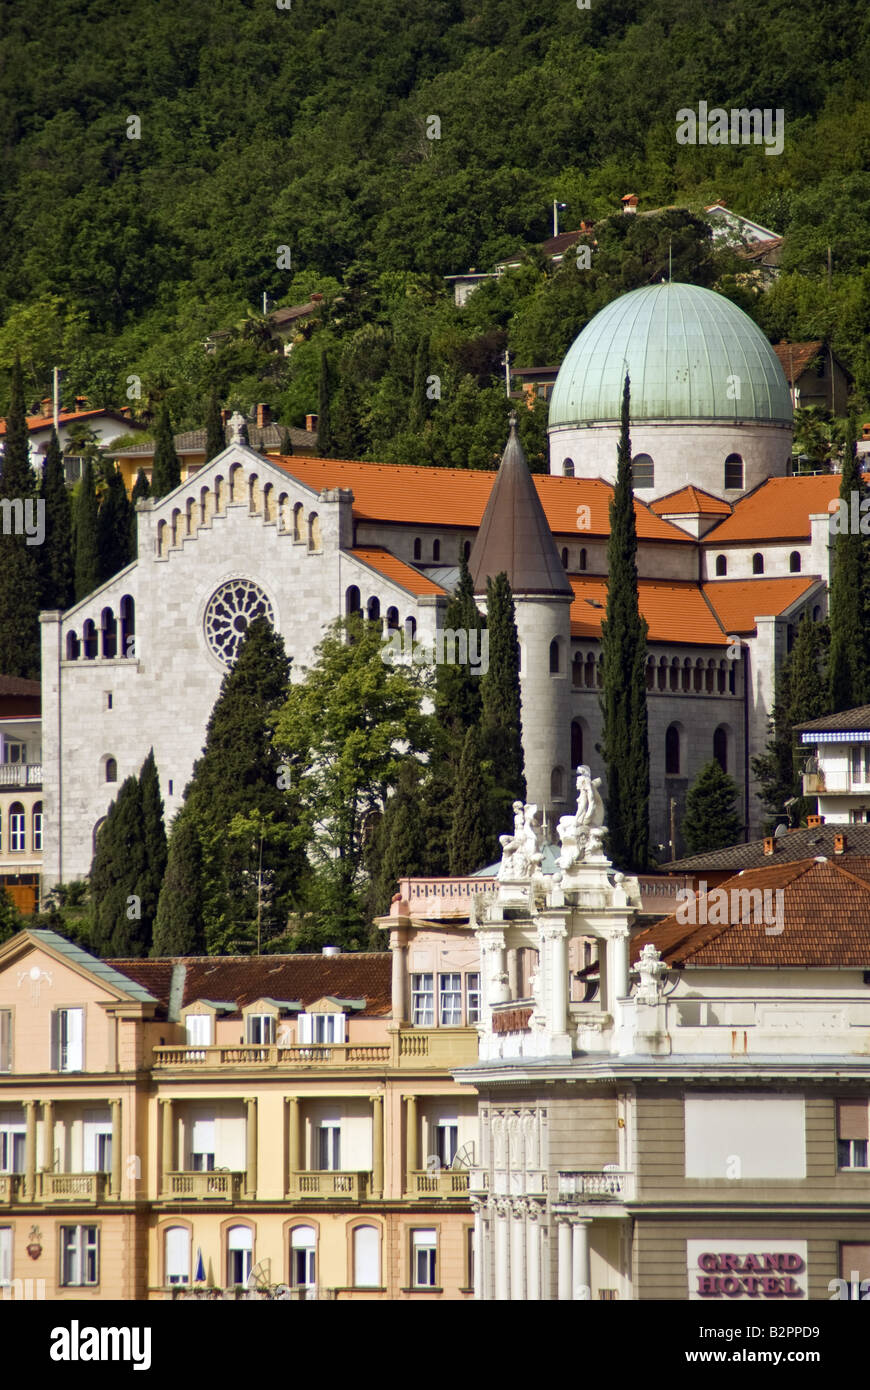 Opatija Church of the Annunciation, above hotels fronting Adriatic Sea coast - Stock Image